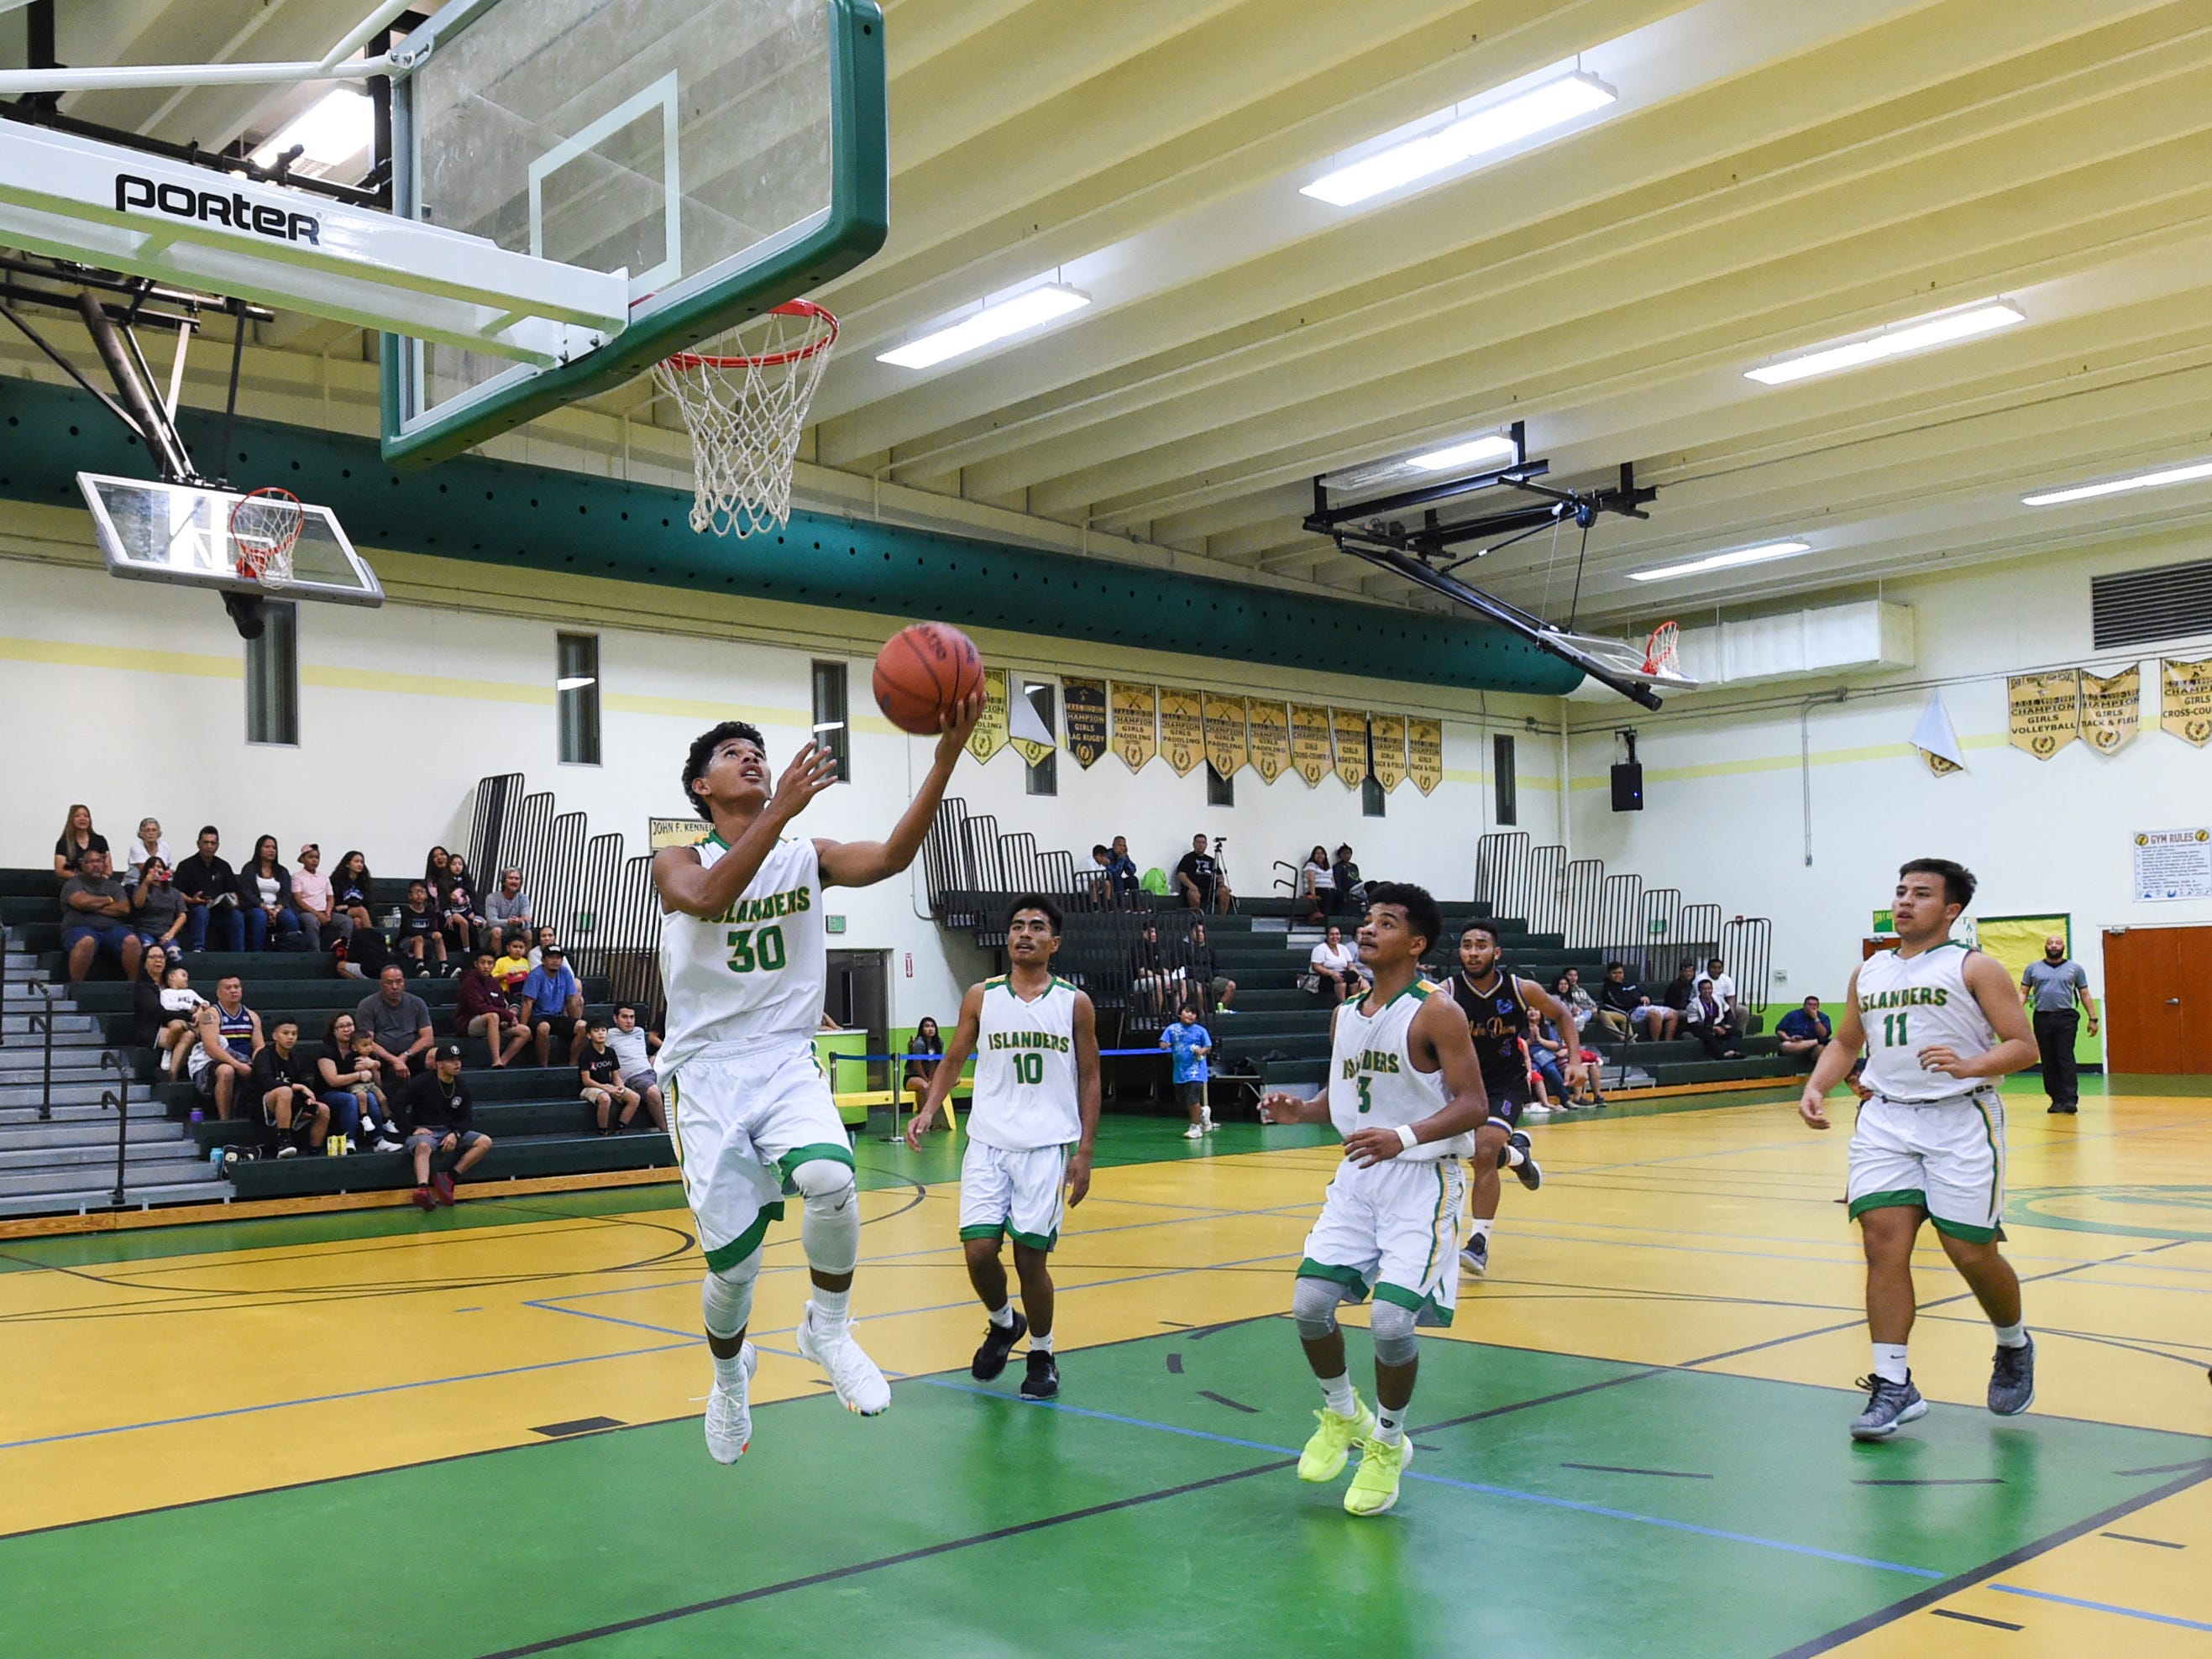 John F. Kennedy sophomore Jeremiah Kintoki (30) finishes with a reverse layup during an Independent Interscholastic Athletic Association of Guam Boys' Basketball game at the JFK High School Gym, Feb. 2, 2019.